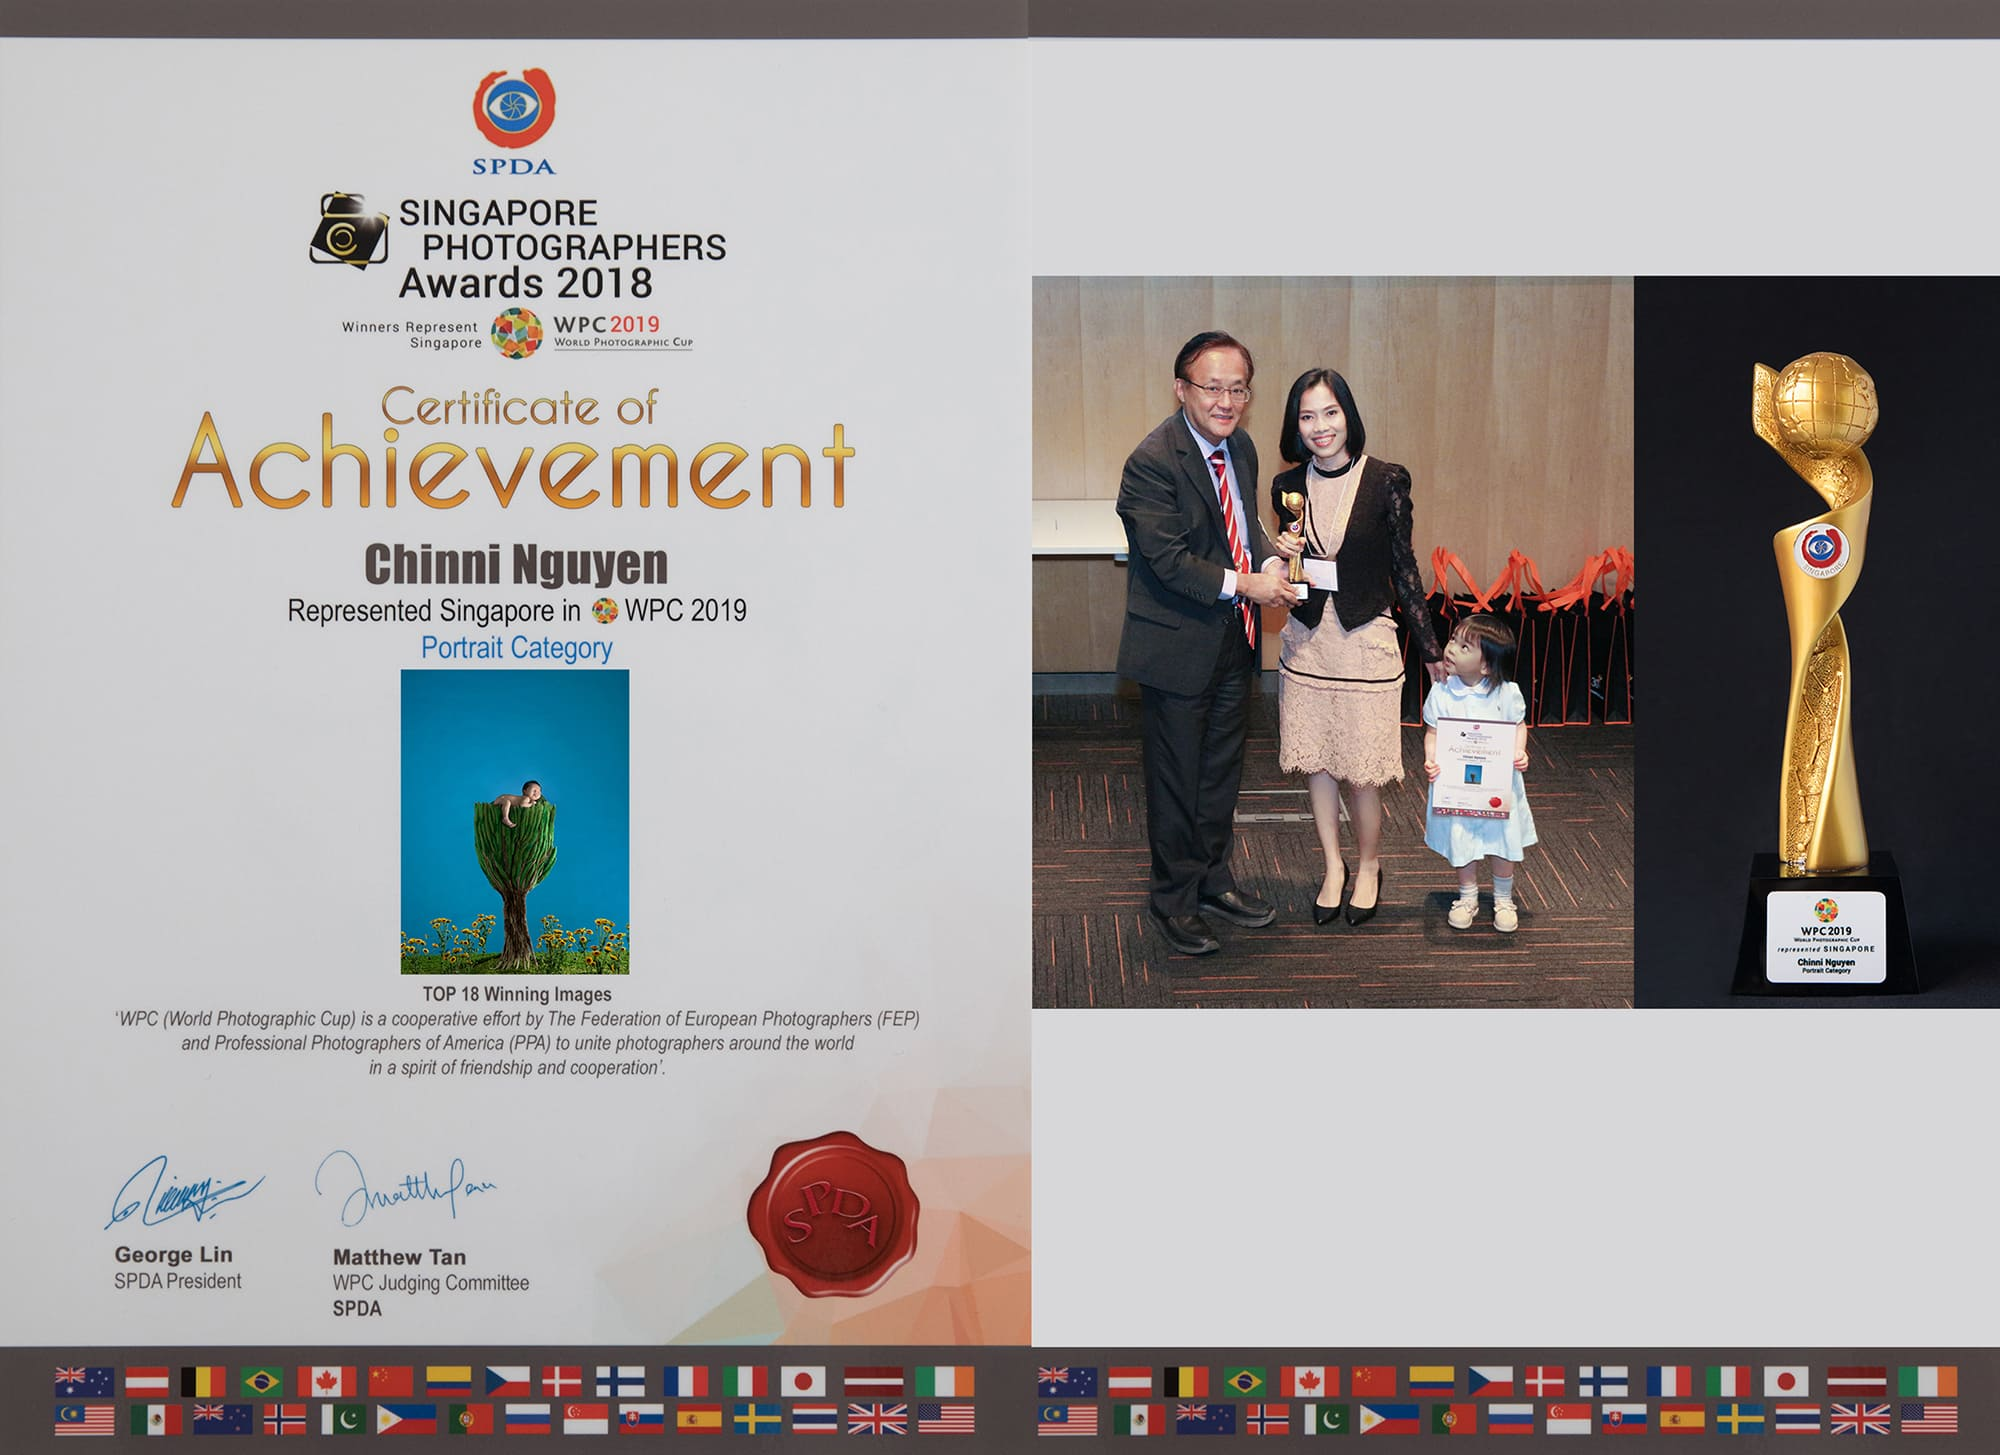 Represented Singapore in the World Photographic Cup 2019